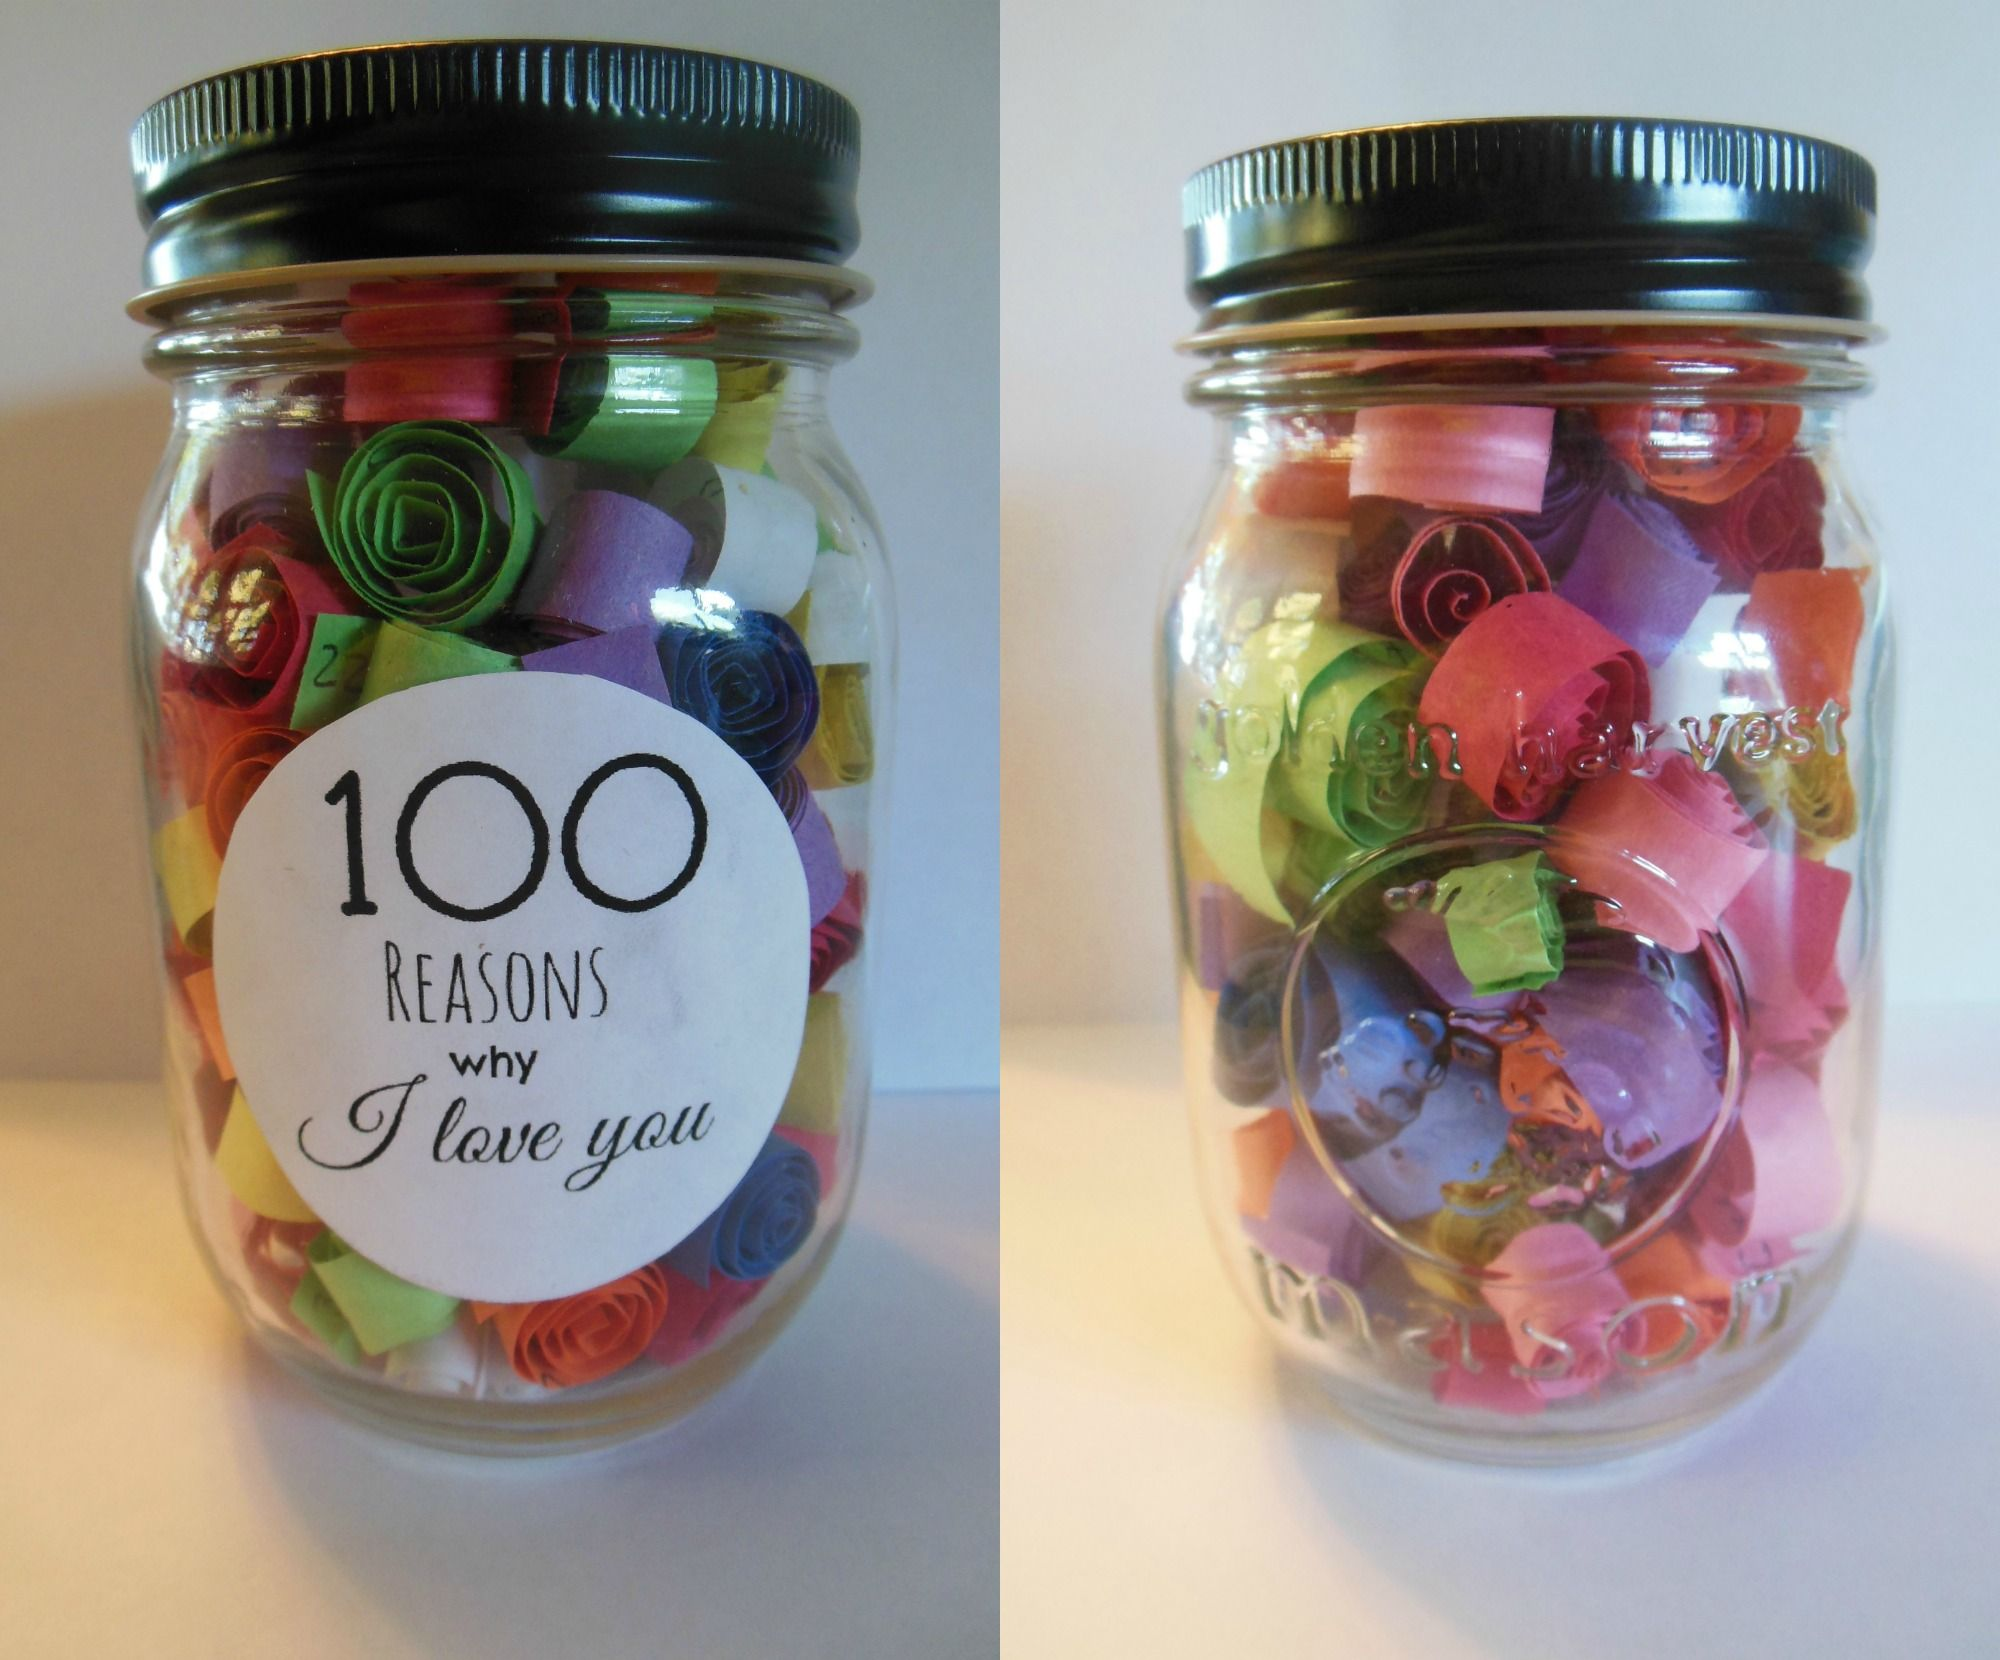 100 Reasons Why I Love You Jar So Simple Yet So Heart Warming My